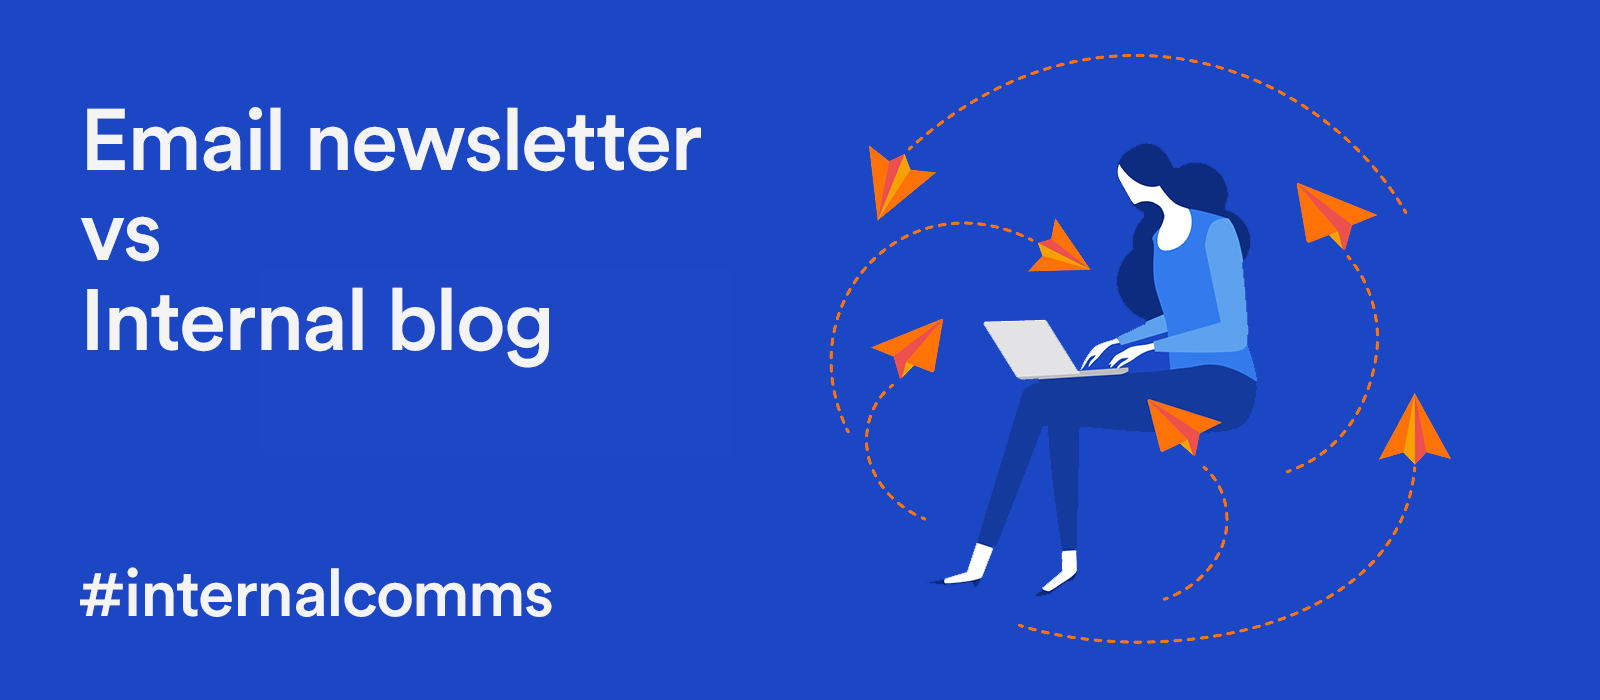 Newsletters are so Passé! Here's Why You Should Use Internal Blog Instead